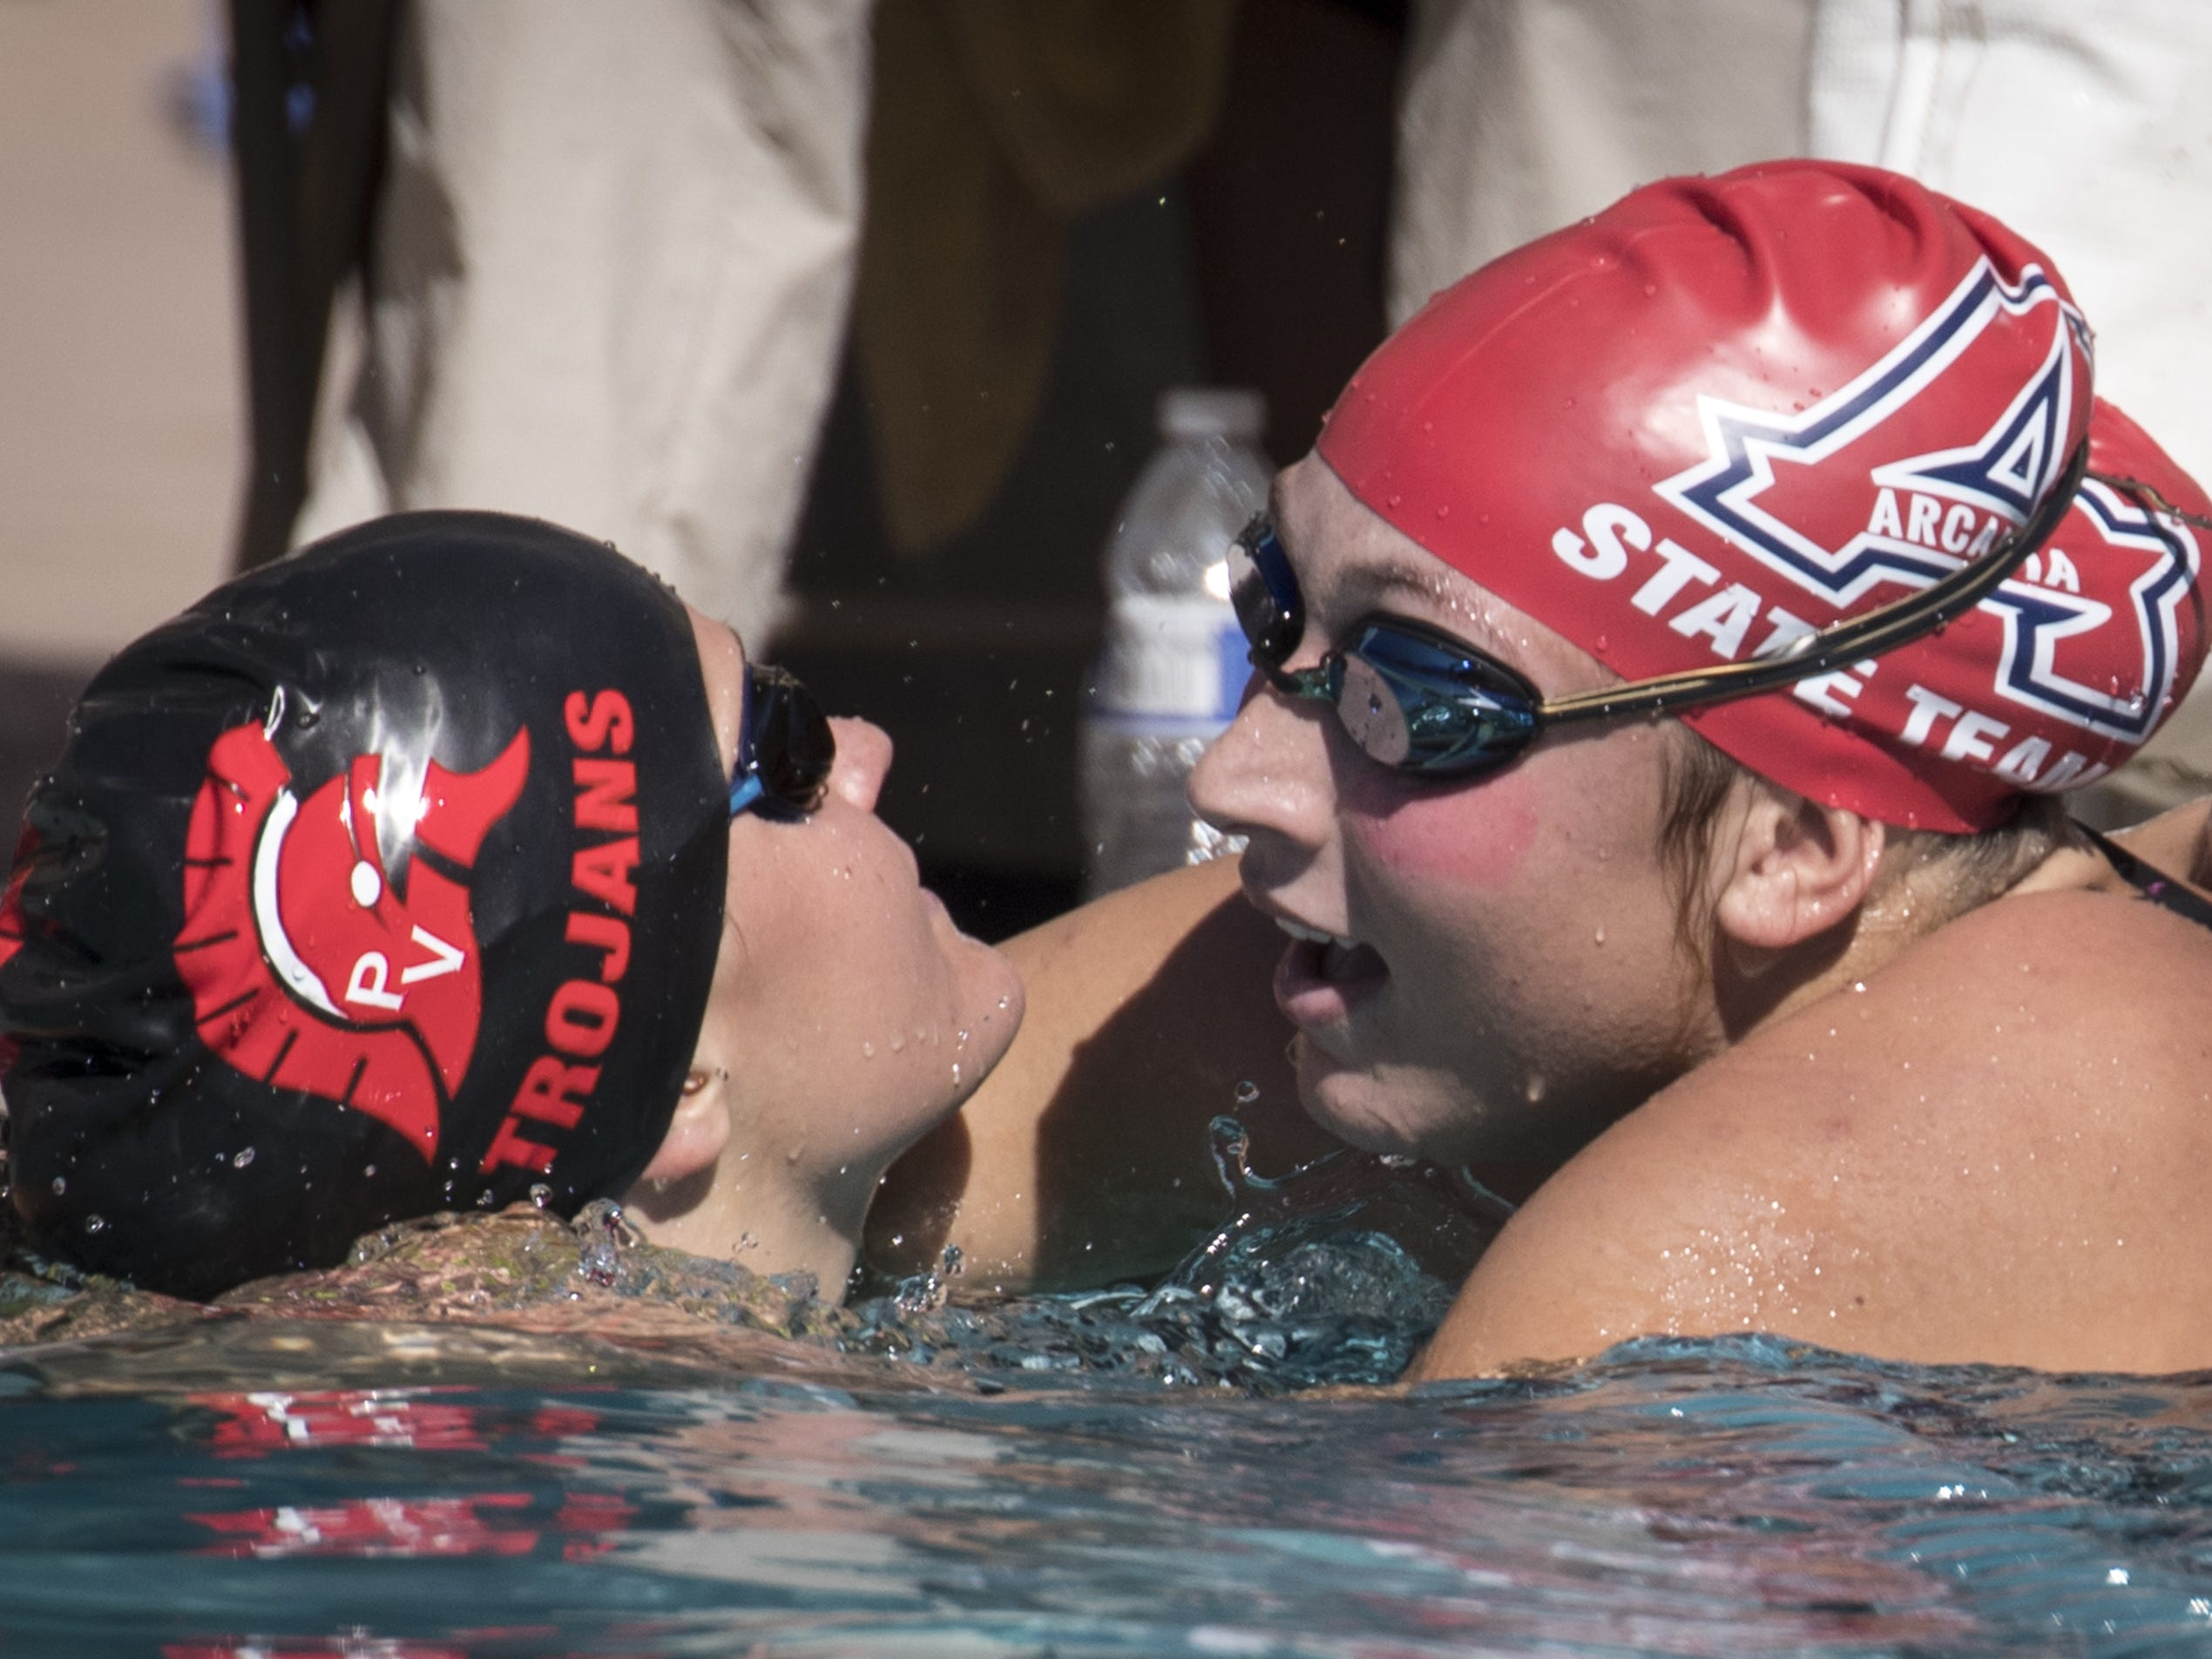 Sadie Edwards (Arcadia, left) congratulates Isabella Fratesi (Arcidia) after the 100 Breaststroke, November 3, 2018, during the AIA Division II state swimming finals at the Skyline Aquatic Center, Mesa. Fratesi won and Edwards finished second.